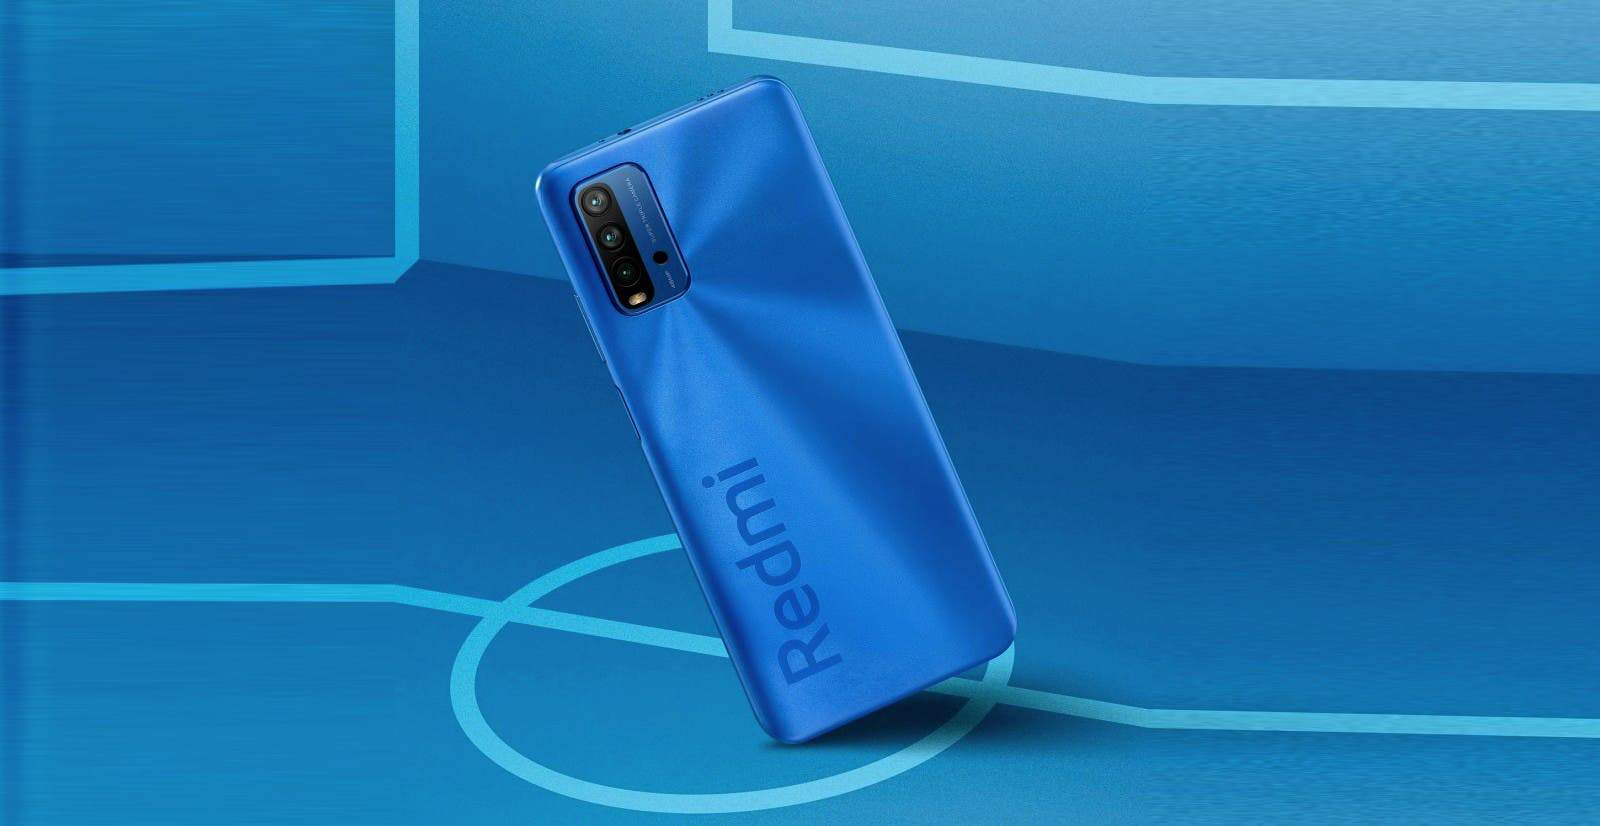 Redmi 9 Power with Snapdragon 662, 48MP Quad-Cameras Launched in India